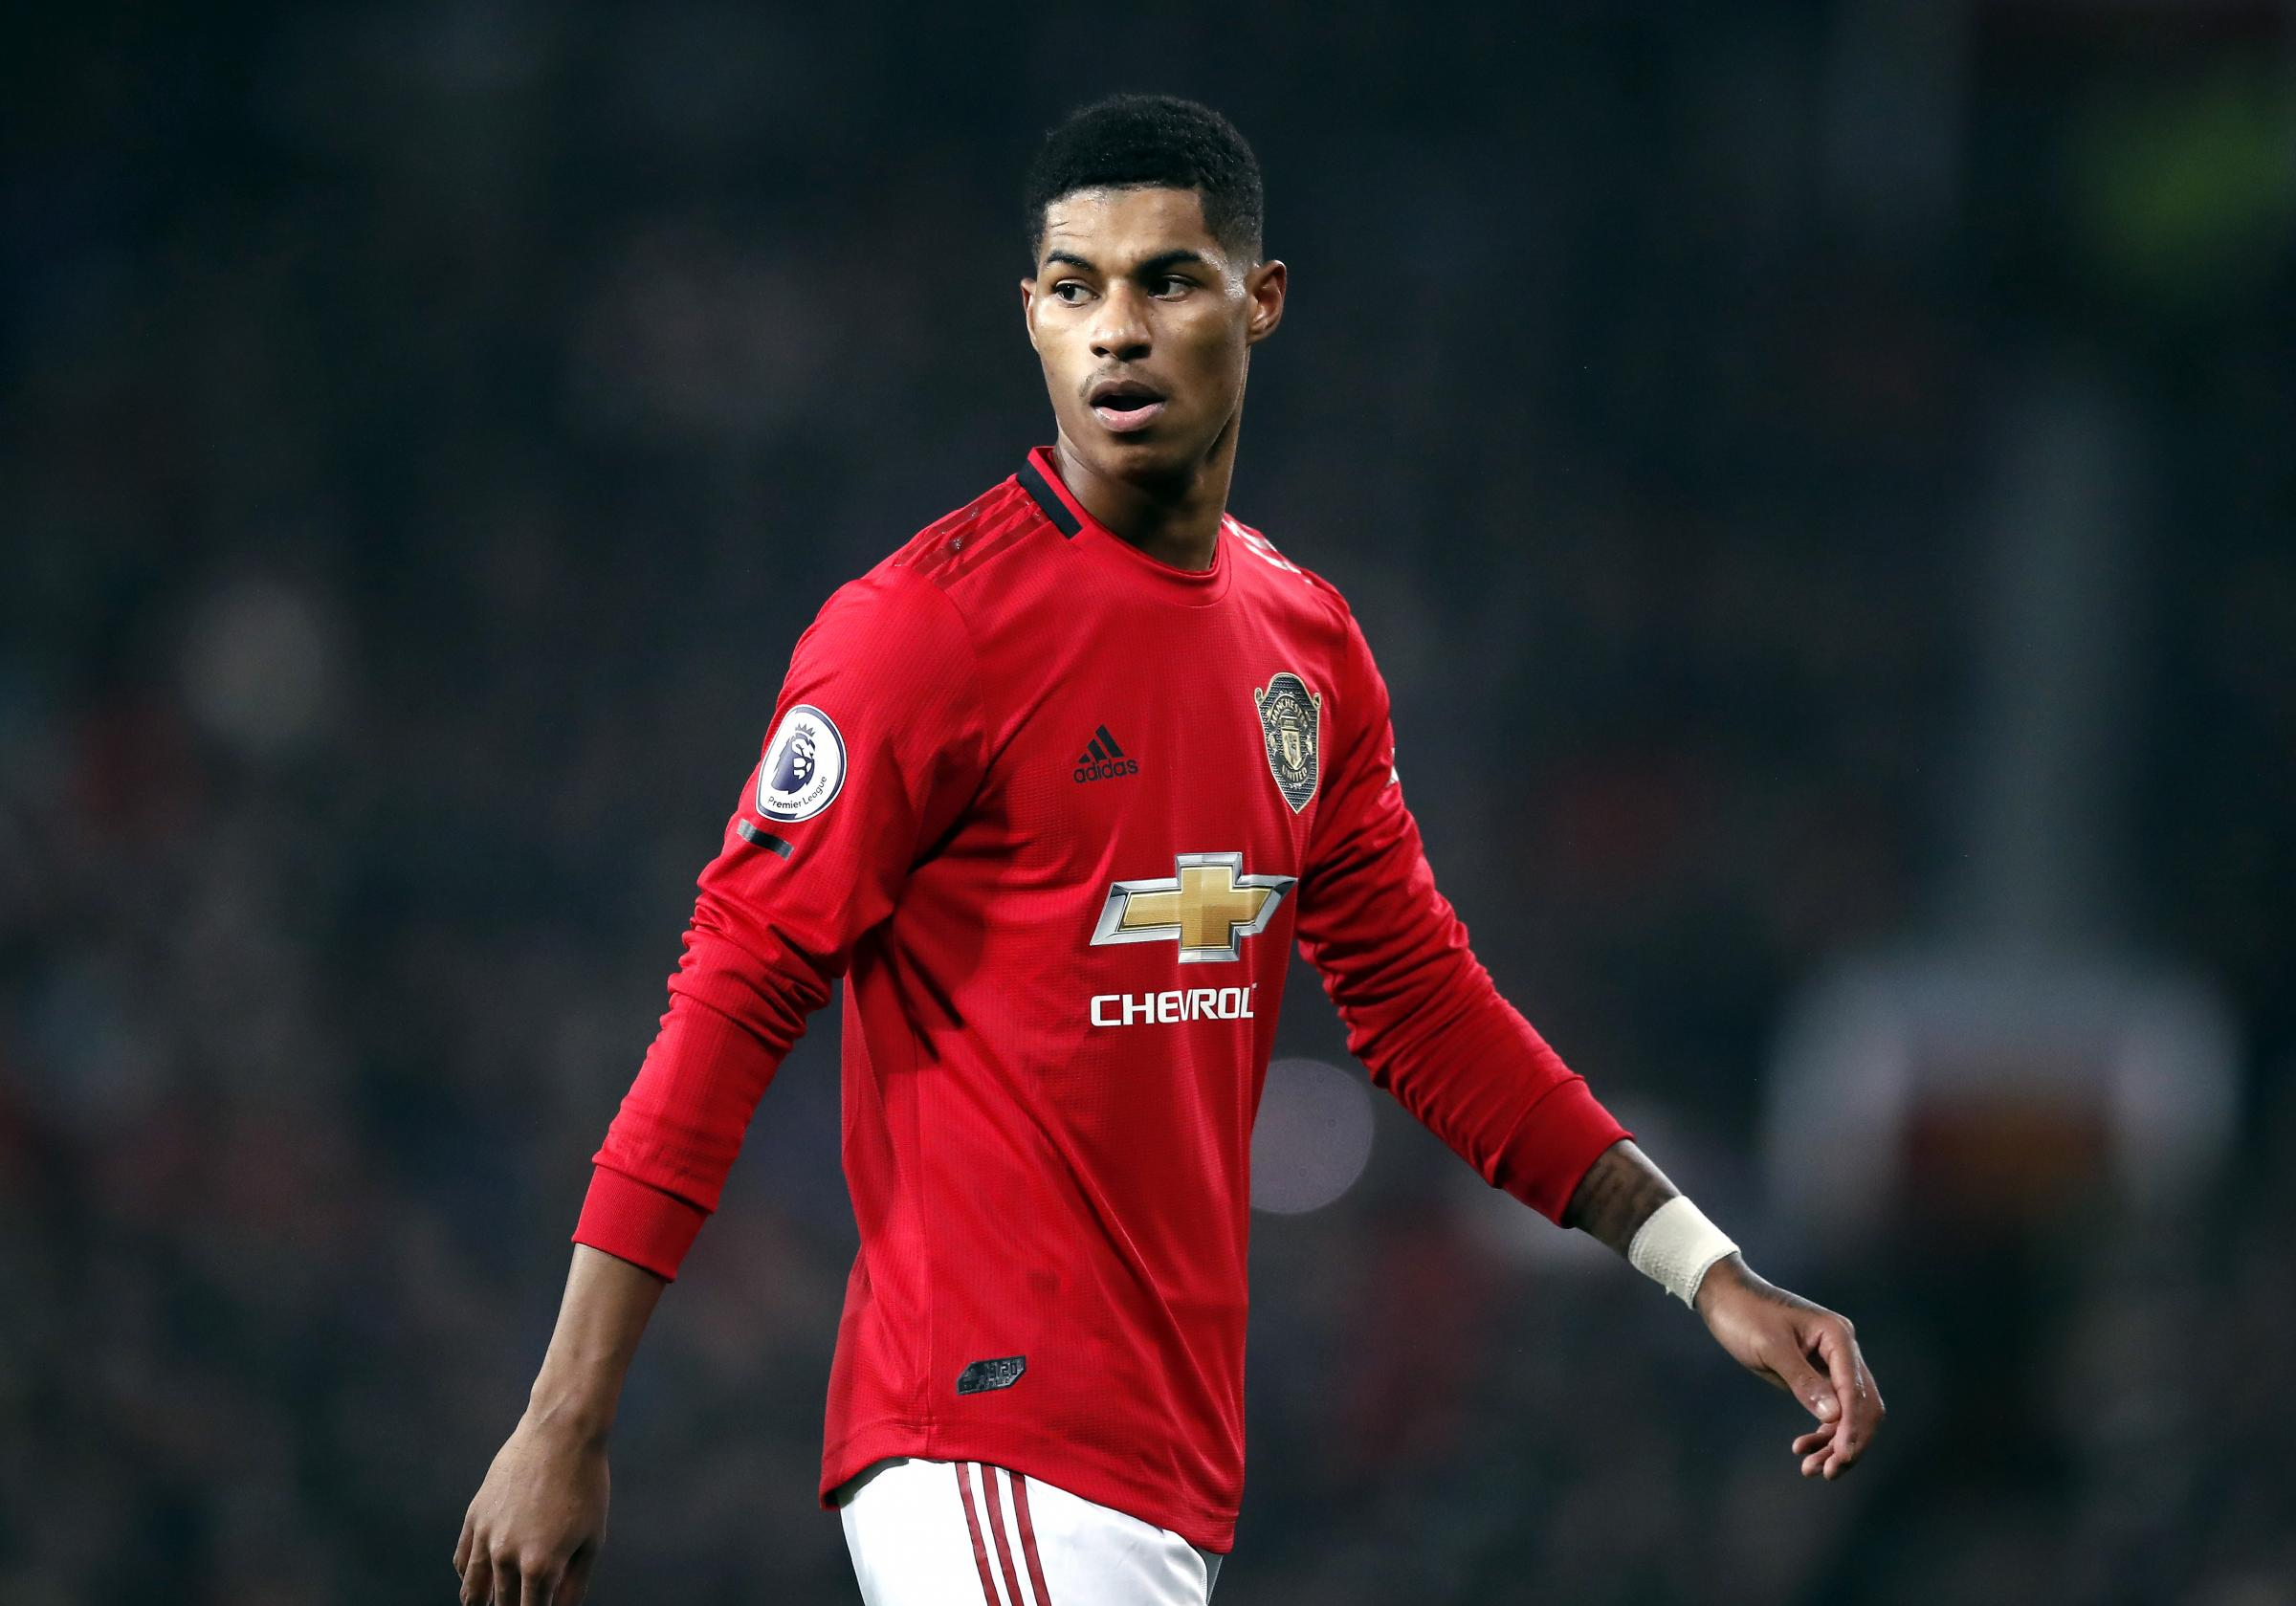 Support from across East Lancashire for Marcus Rashford campaign